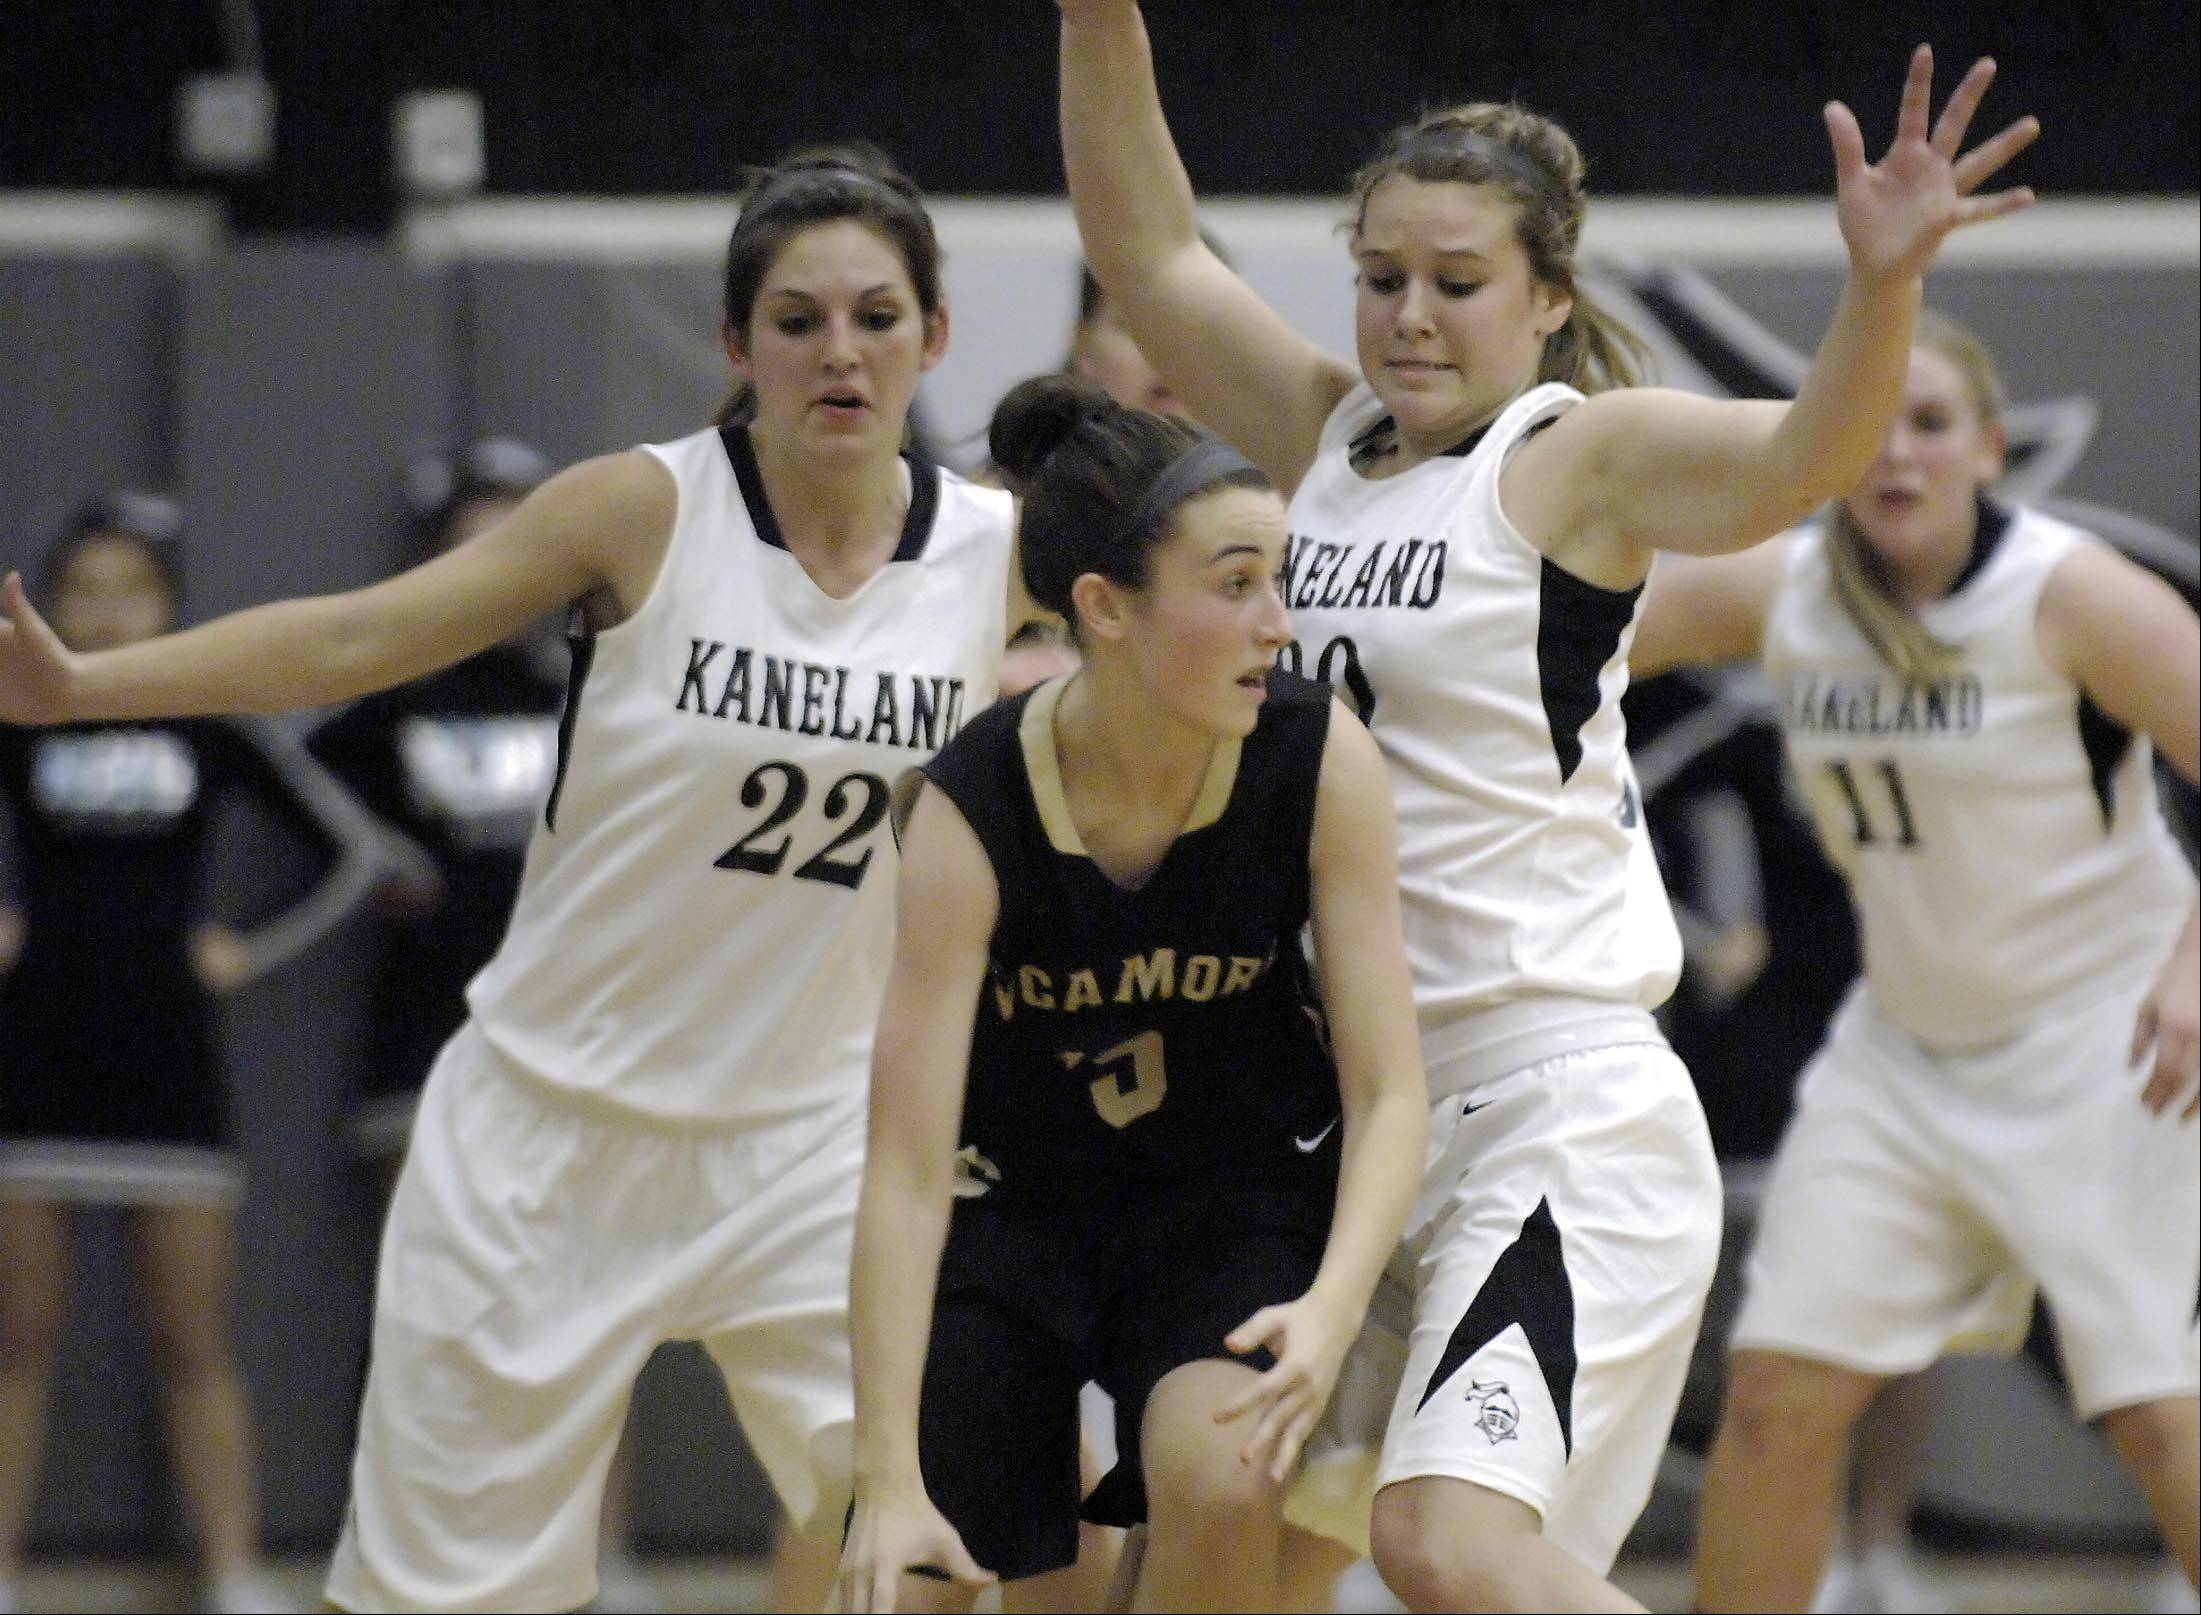 Kaneland's Brooke Harner and Ally VanBogaert, right, pressure Sycamore's Lauren Goff Thursday in Maple Park.